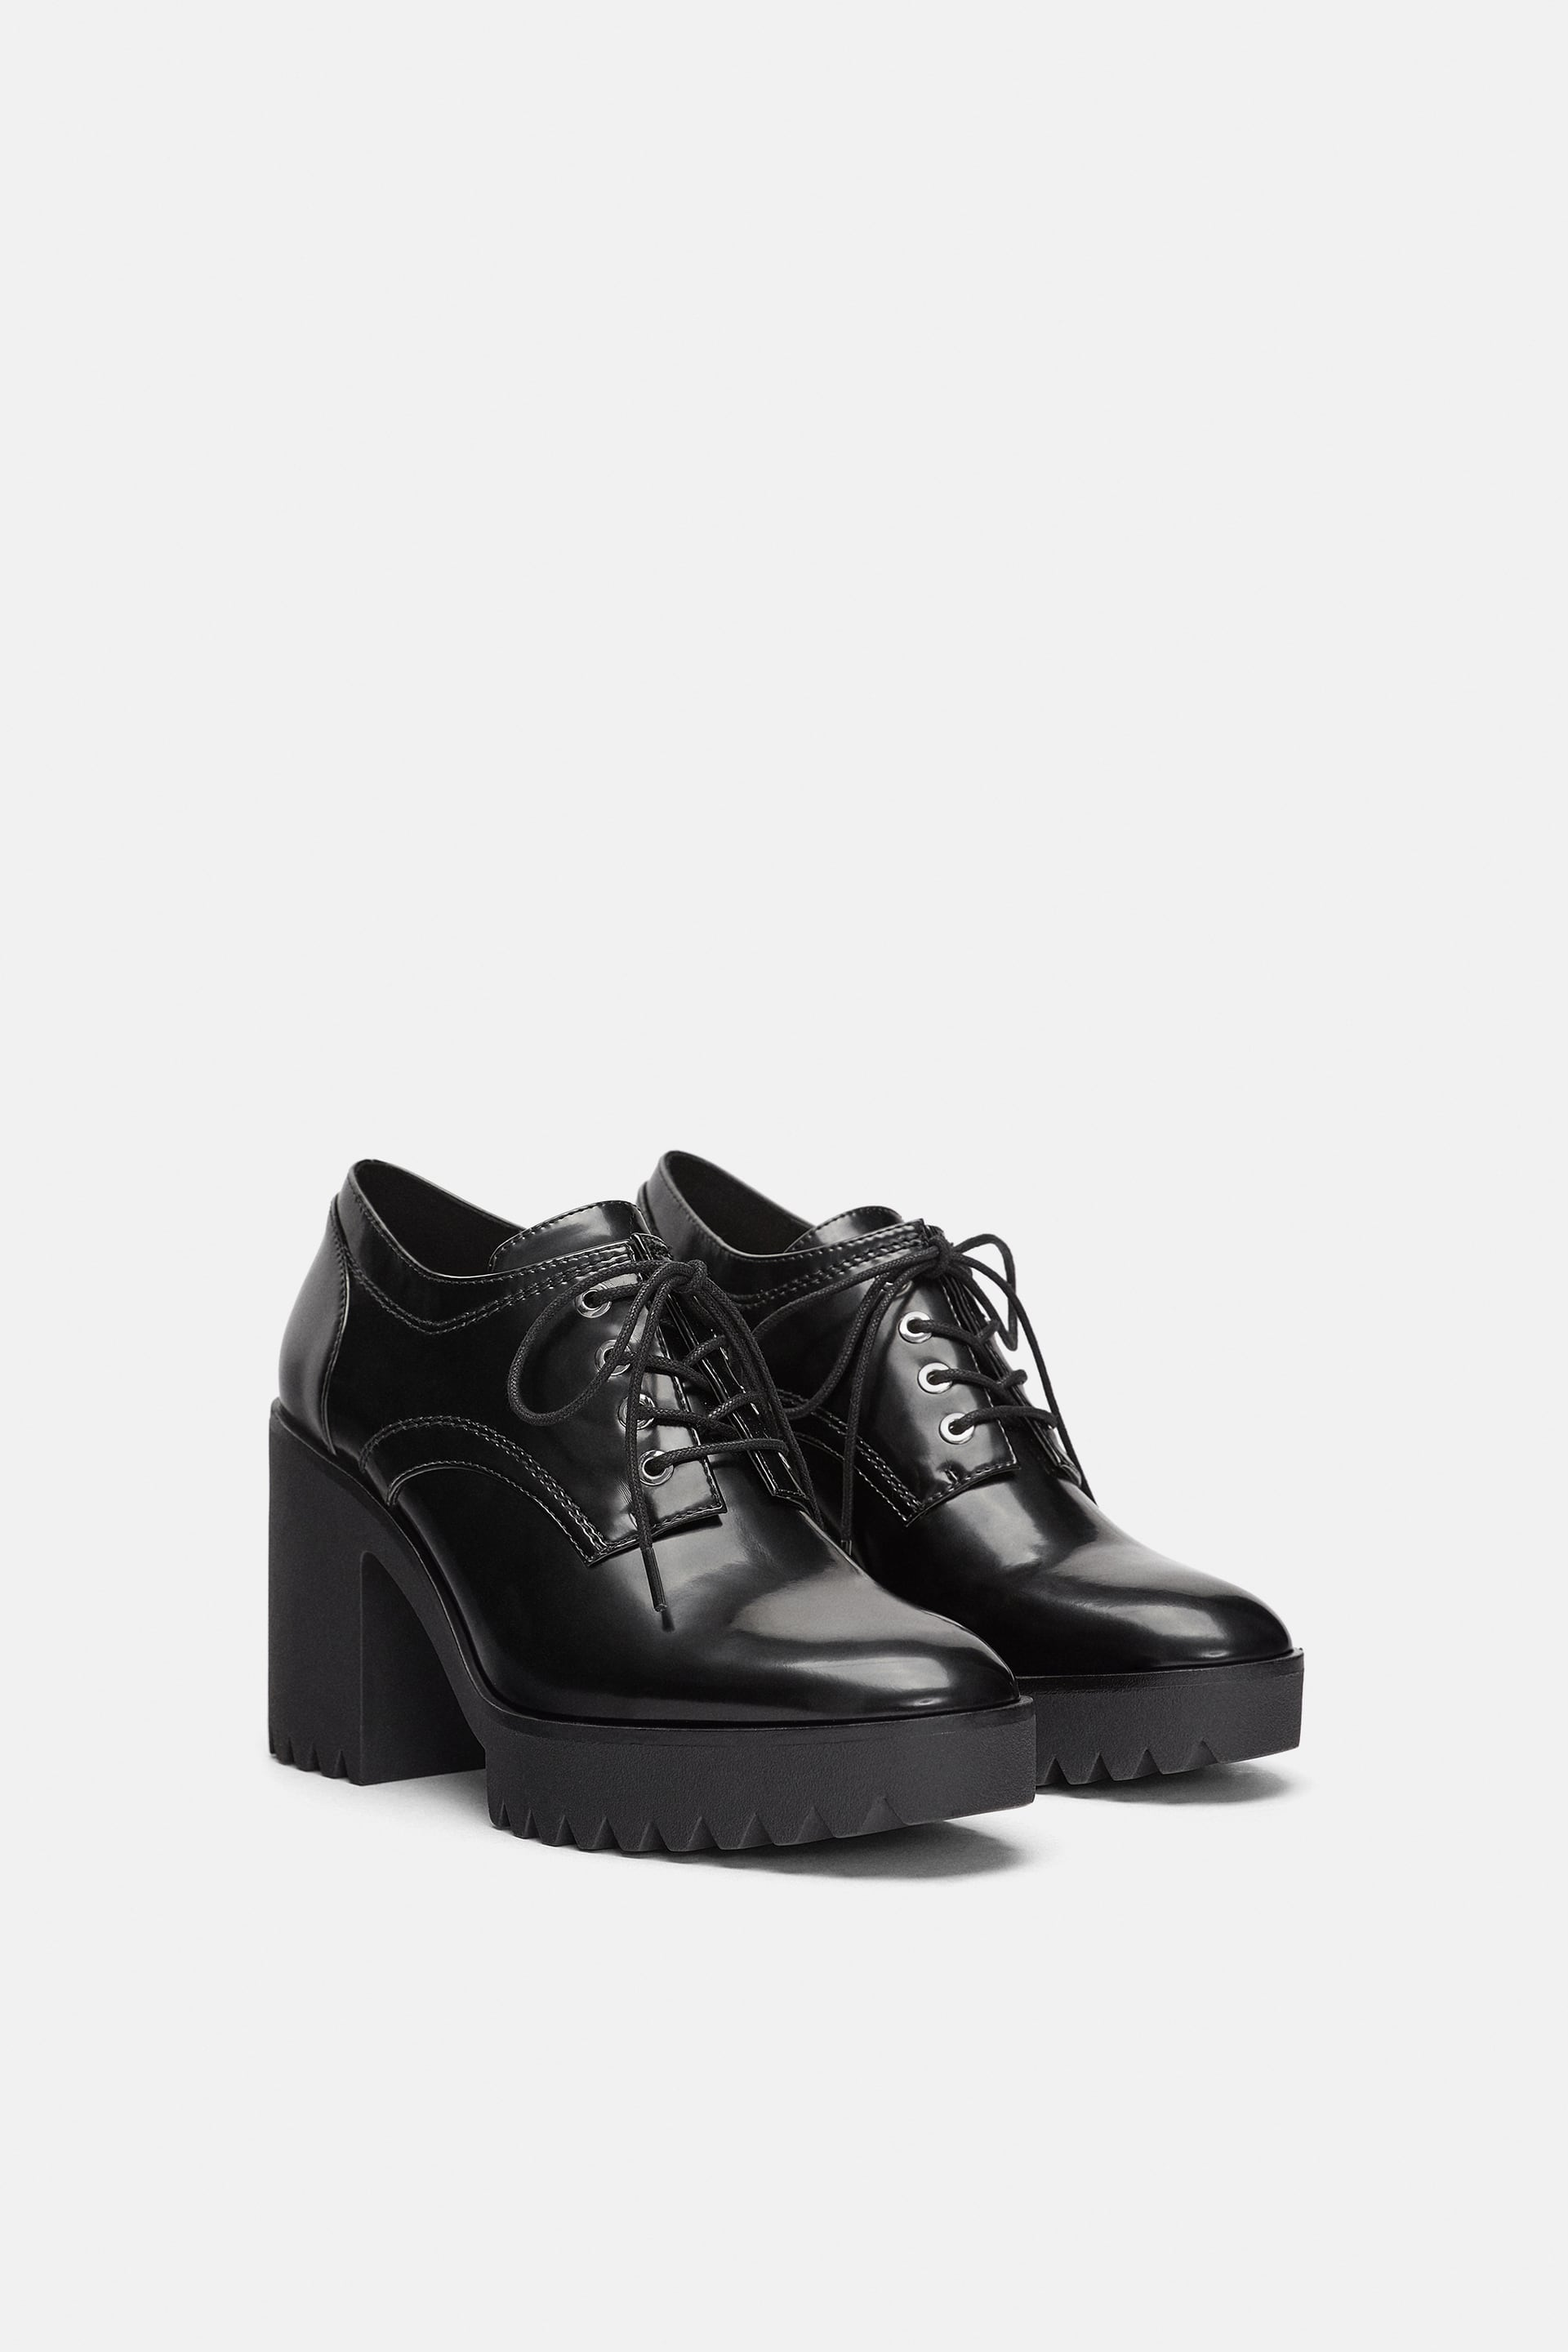 Heeled Oxfords With Track Sole  Highheels Woman Shoes by Zara